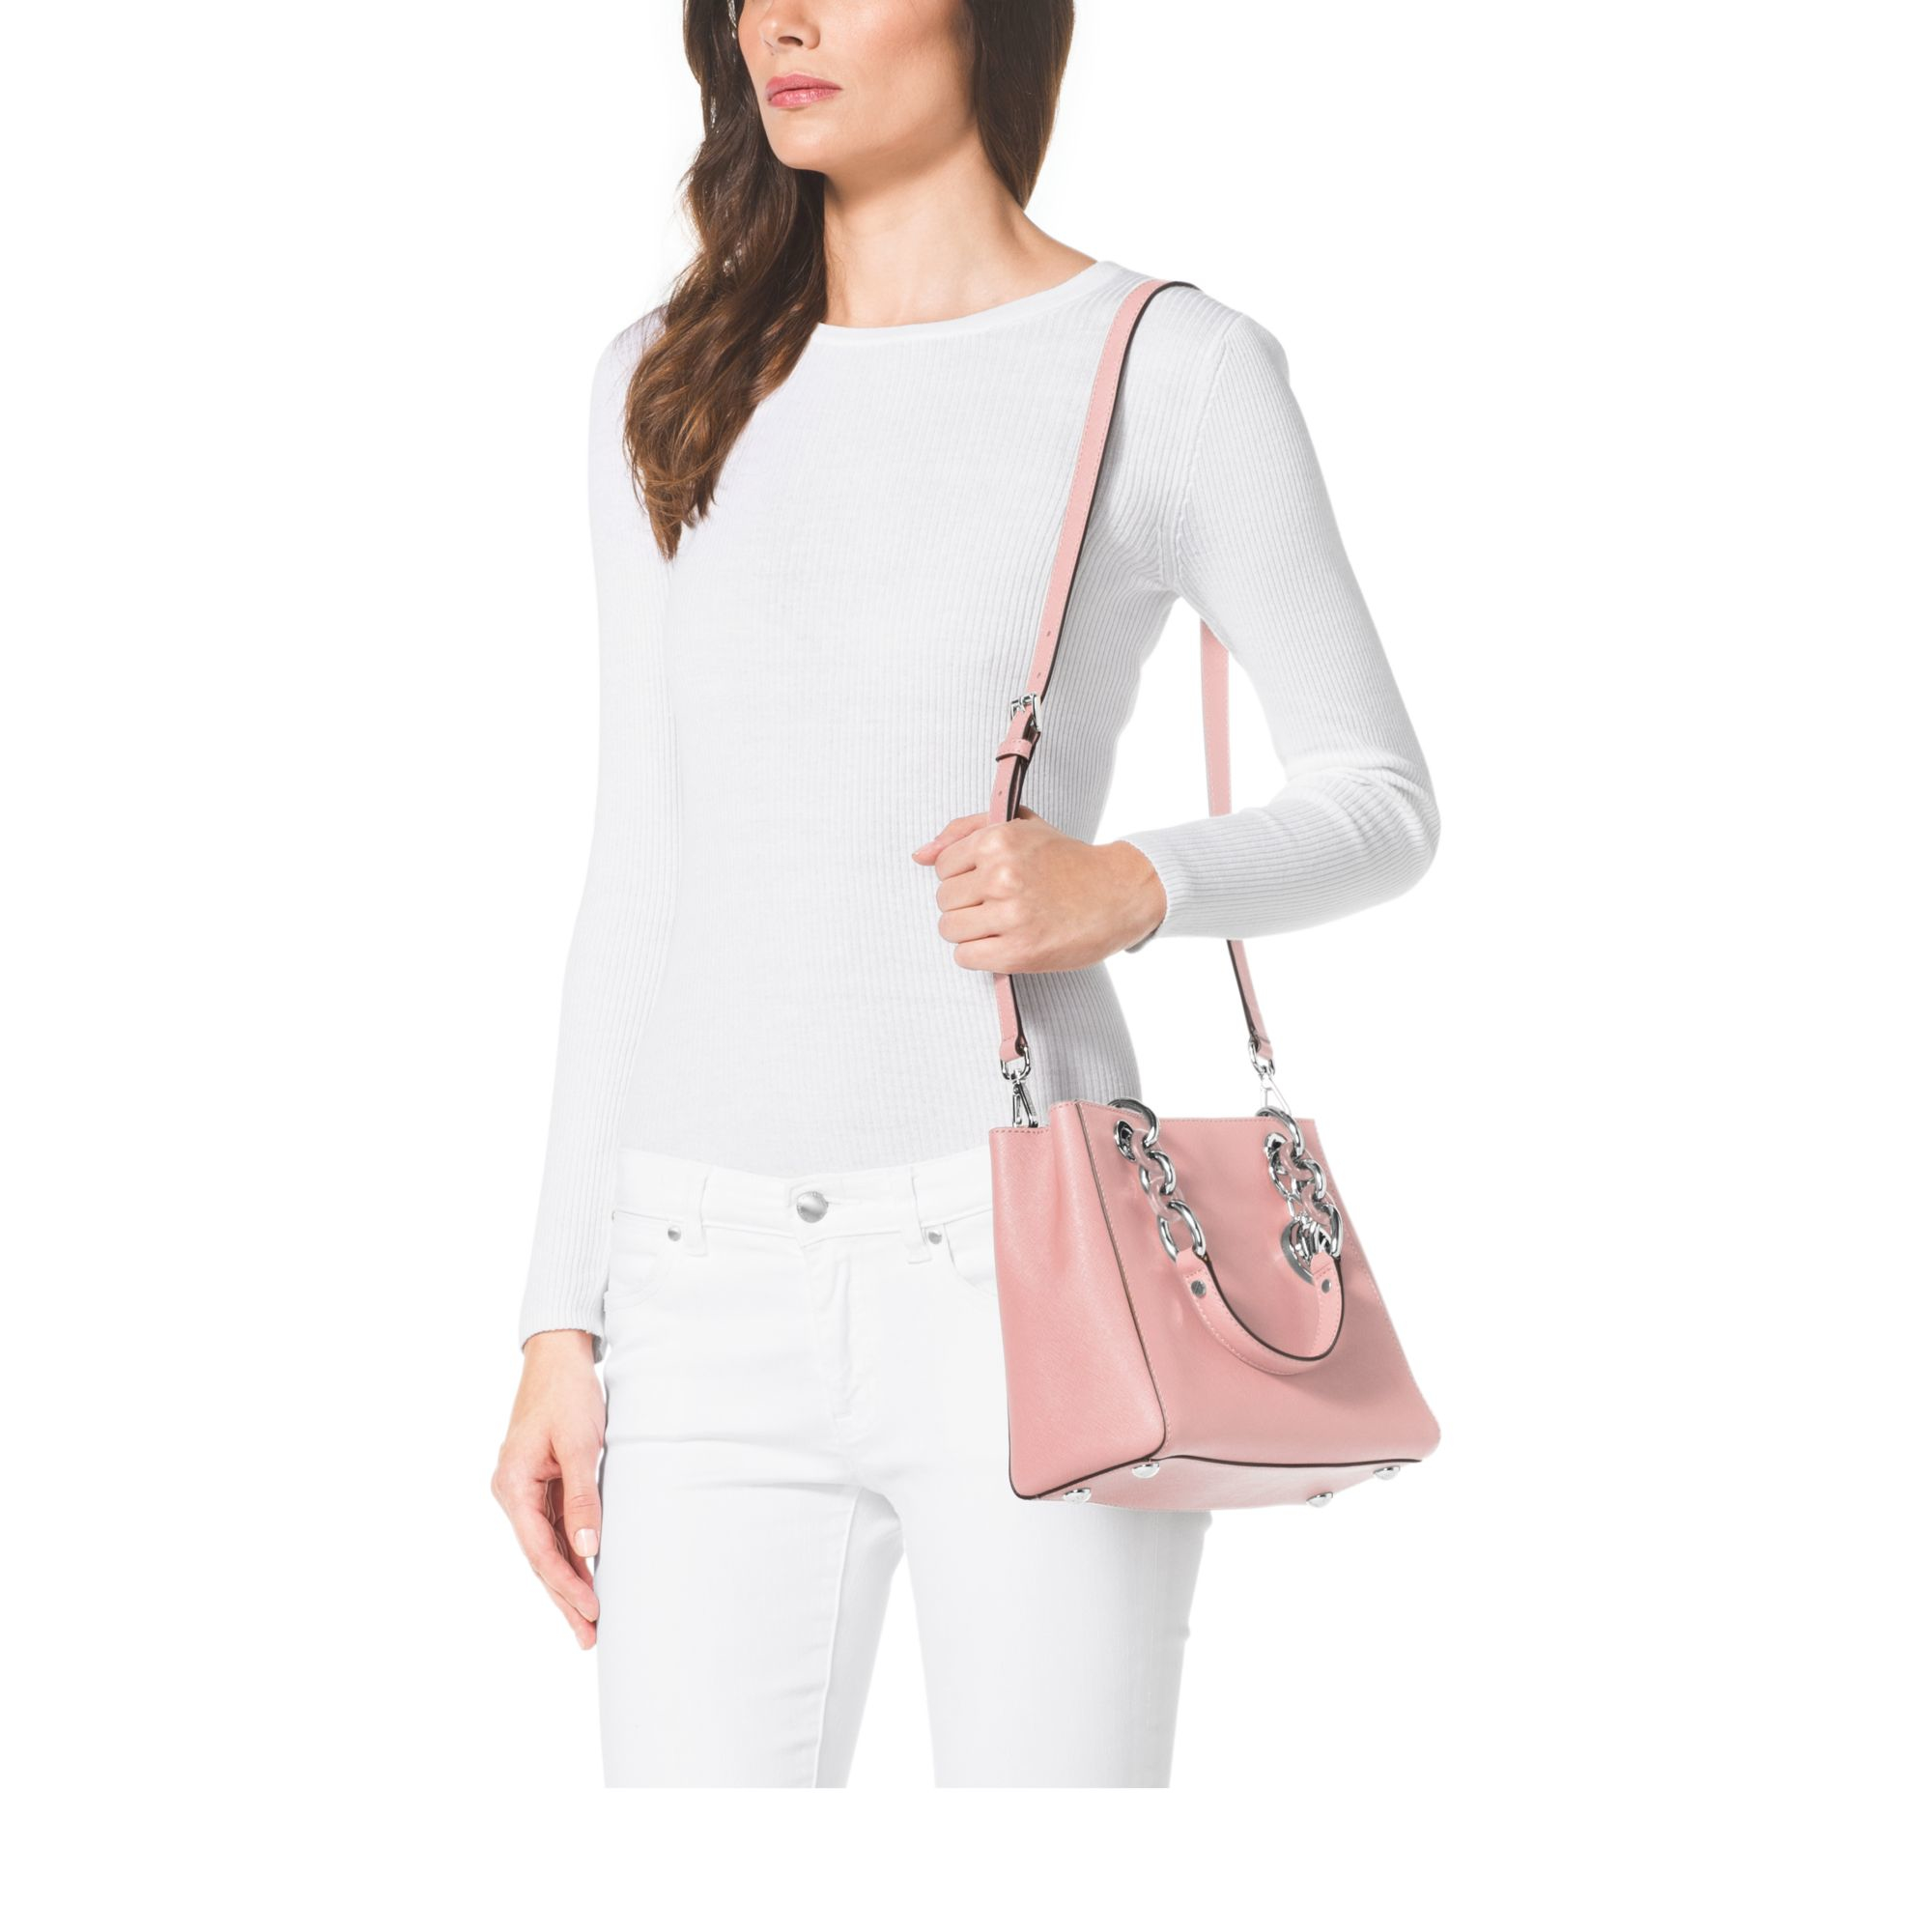 michael kors cynthia small saffiano leather satchel in pink lyst. Black Bedroom Furniture Sets. Home Design Ideas